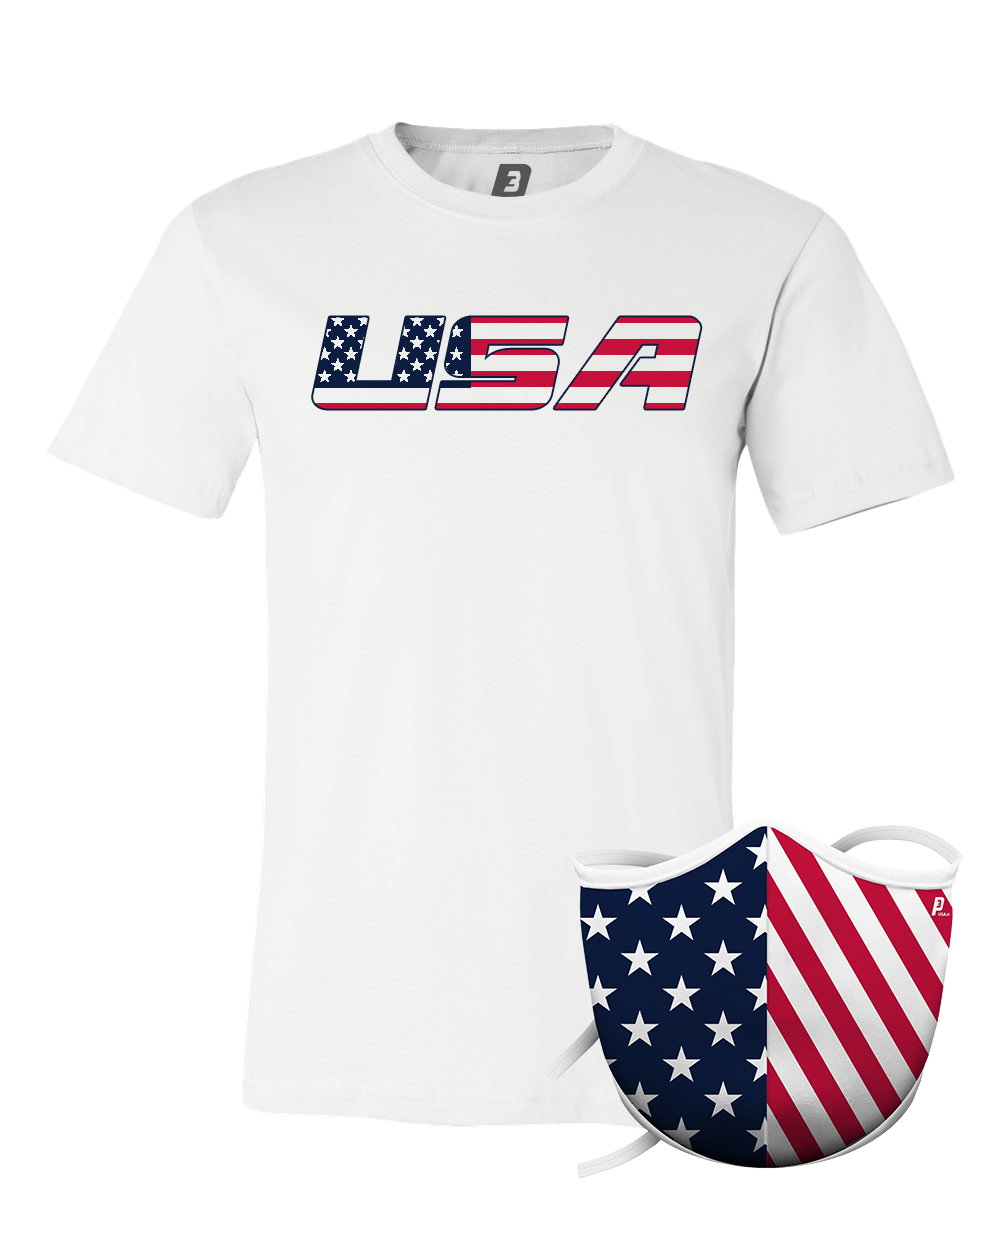 USA Pack (Men's/Unisex)